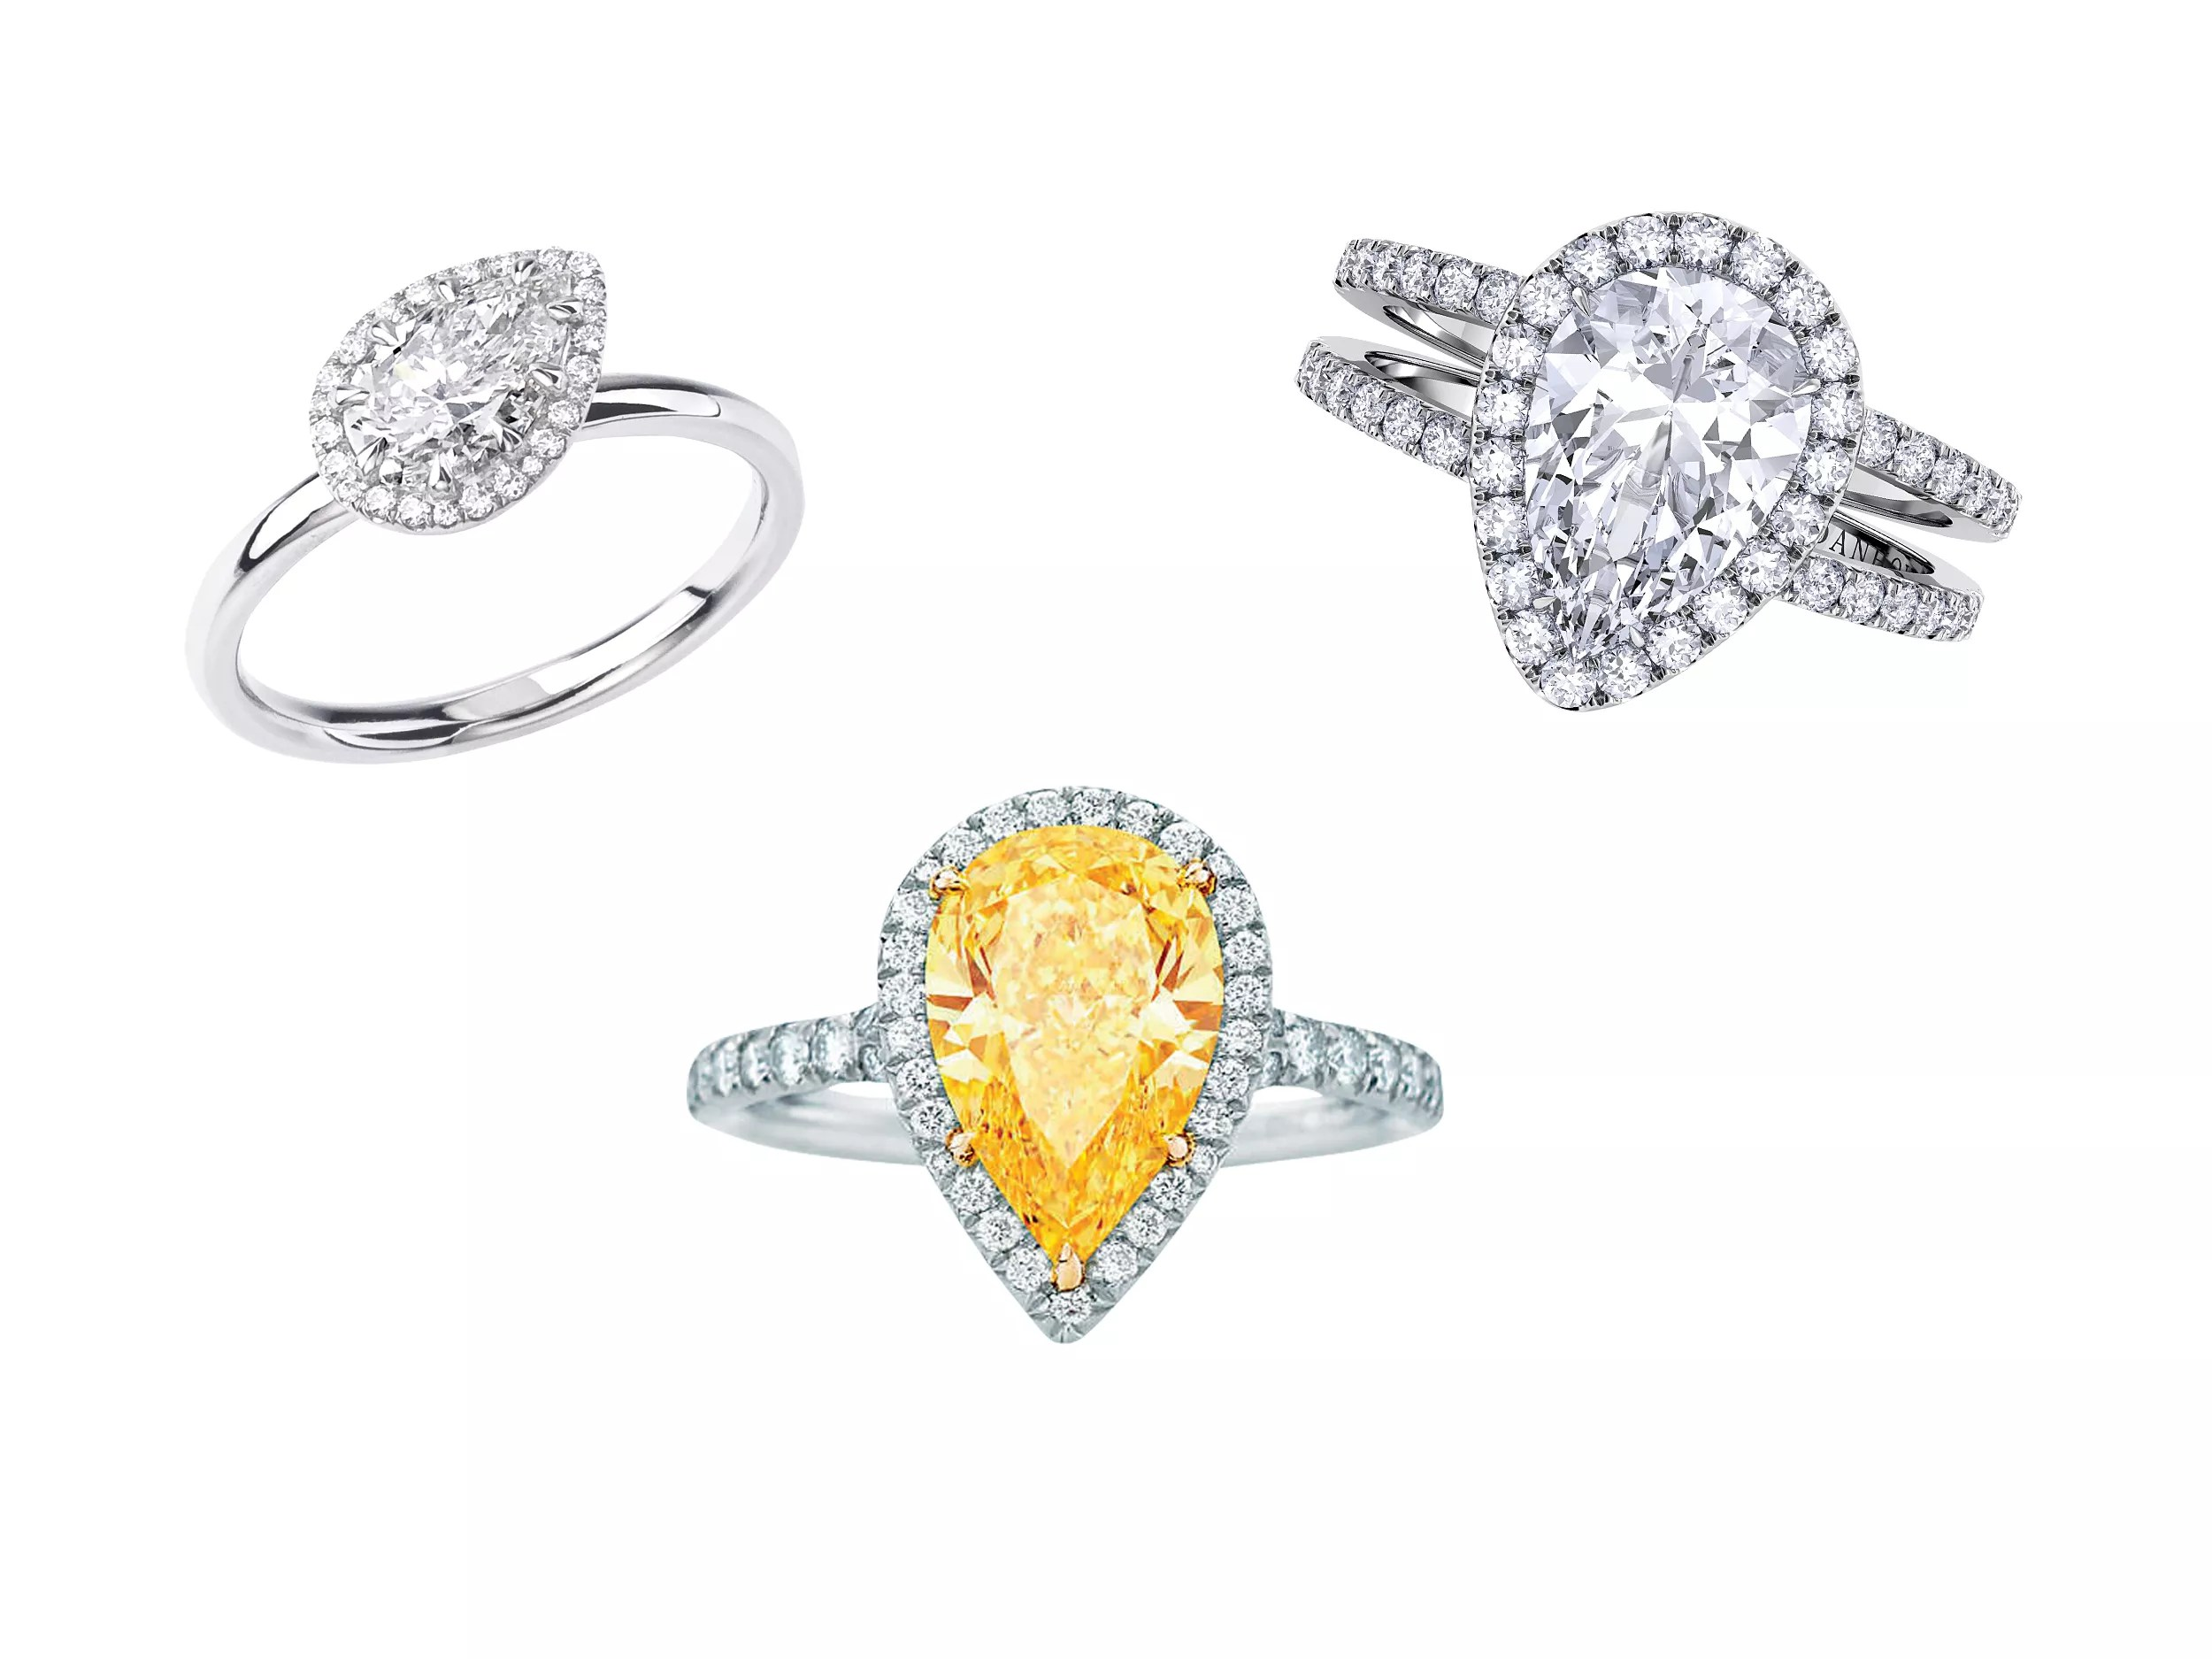 Gorgeous Pear-Shaped Engagement Rings